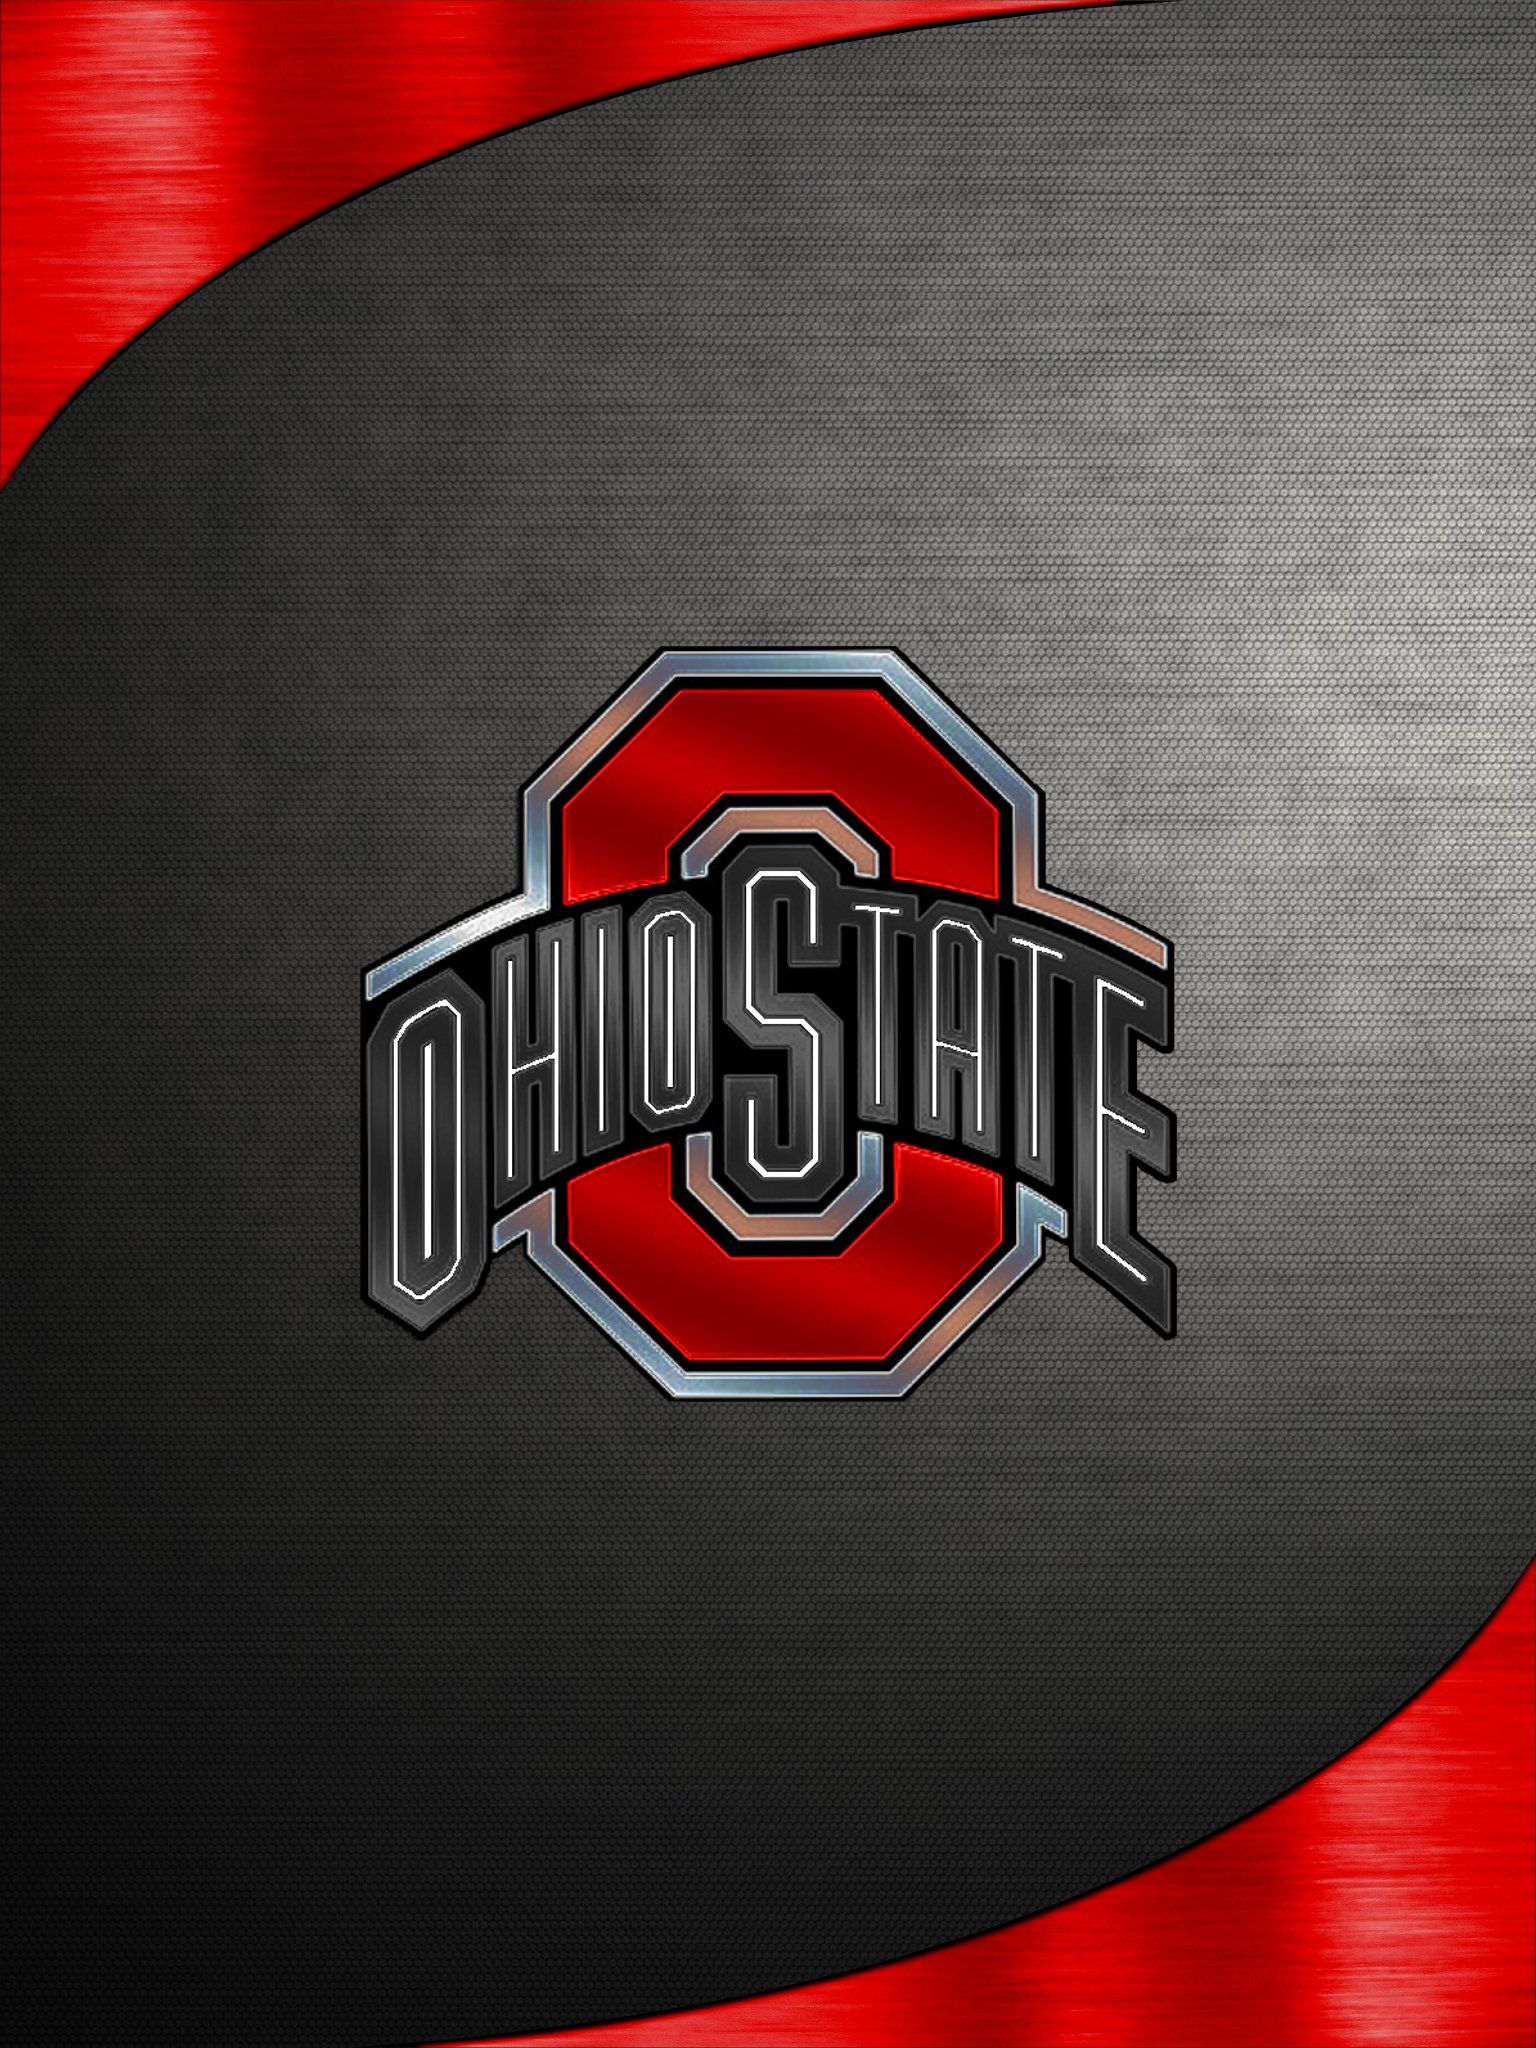 Pin by Eric Luevano on Sports (With images) Ohio state